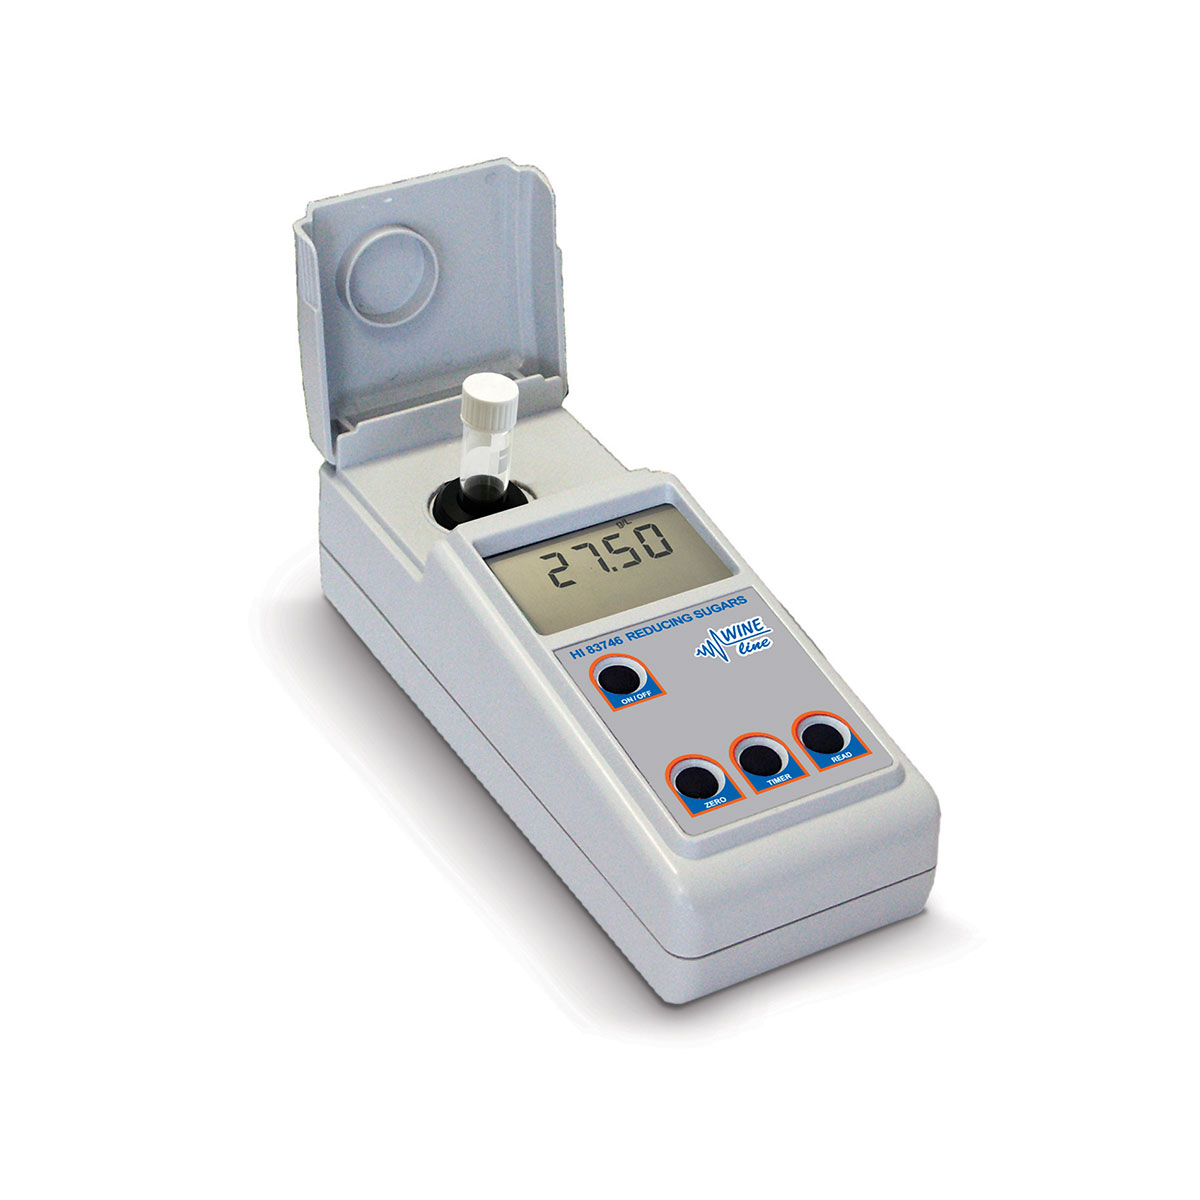 Photometer for Reducing Sugars in Wine - HI83746